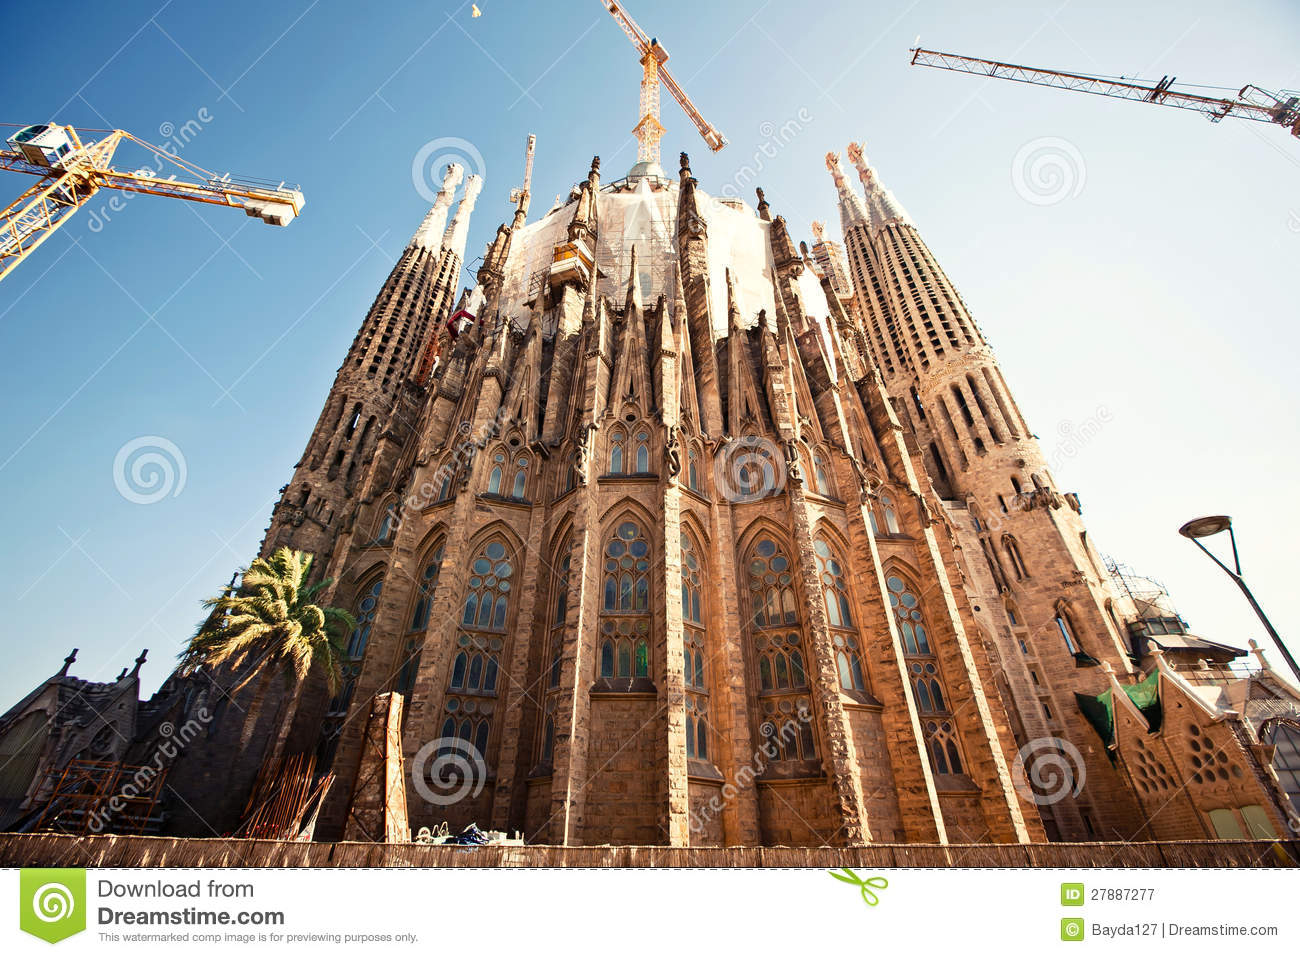 La sagrada familia in barcelona spain editorial for La sagrada familia barcelona spain